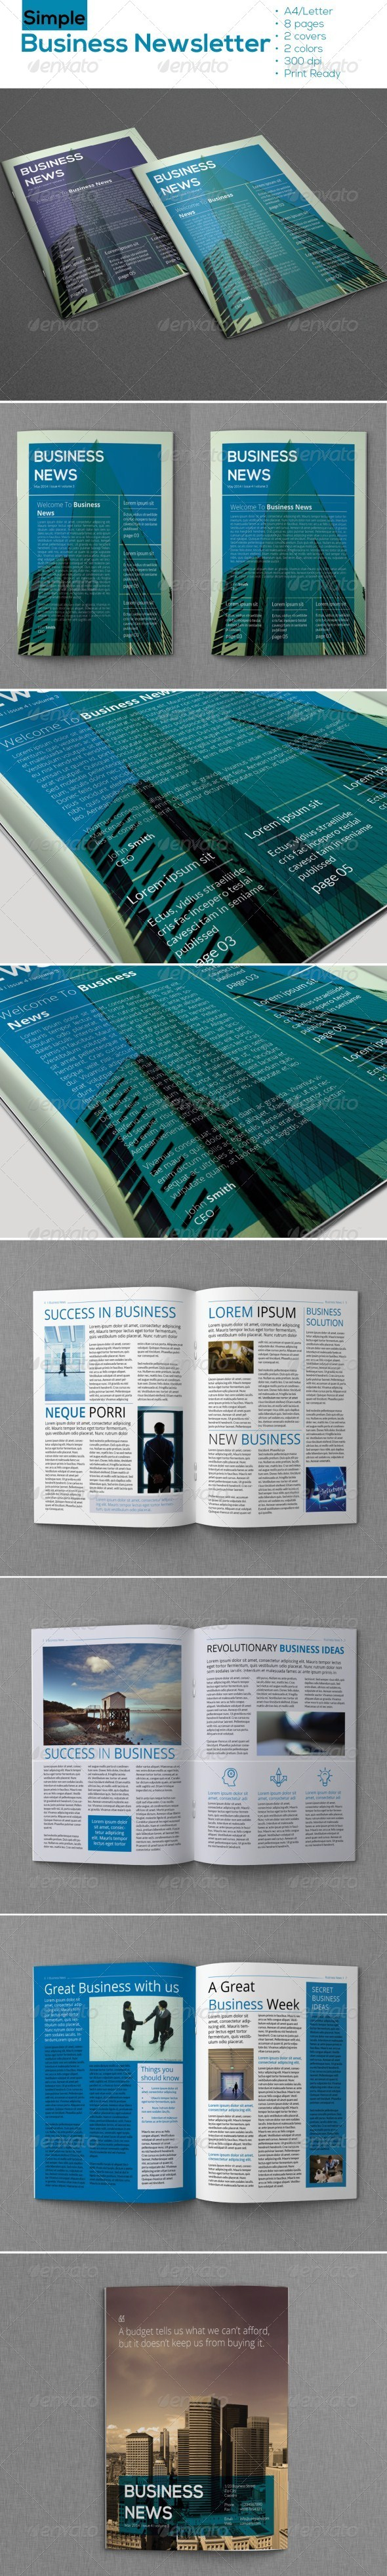 GraphicRiver Simple Business Newsletter 6842488